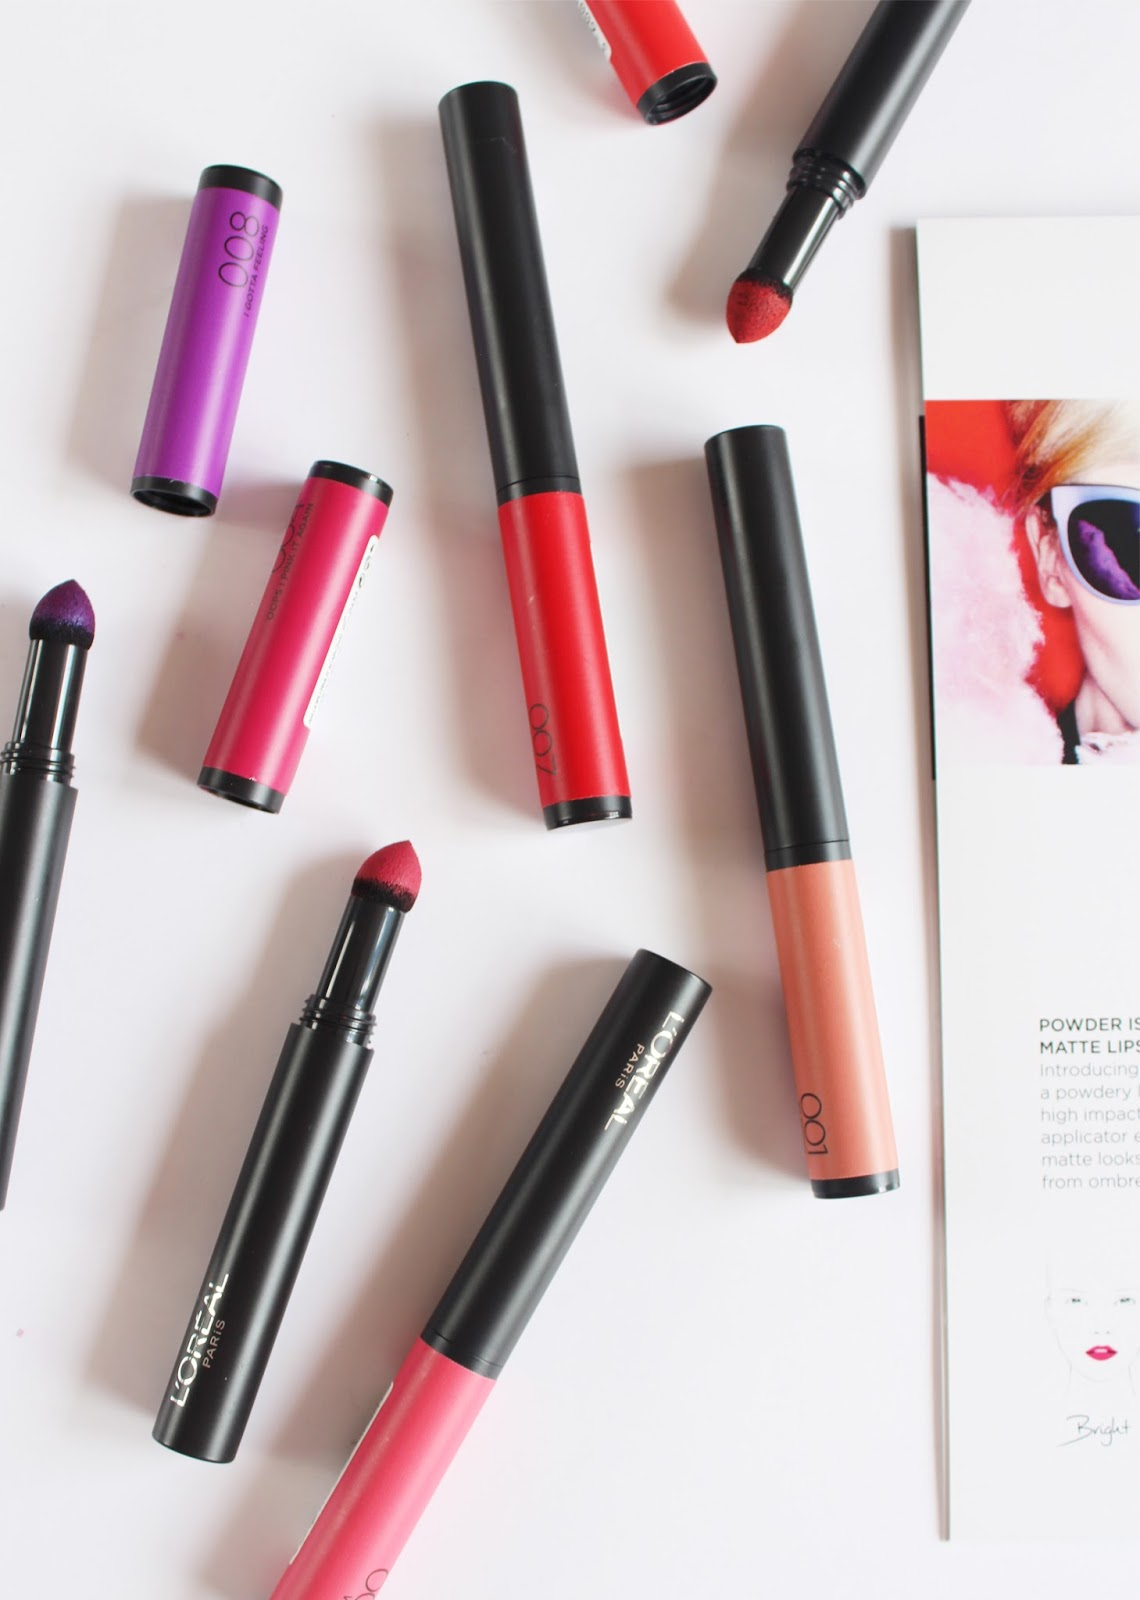 L'OREAL PARIS | Matte FX by Infallible Lip Colours - Review + Swatches (All Shades) - CassandraMyee